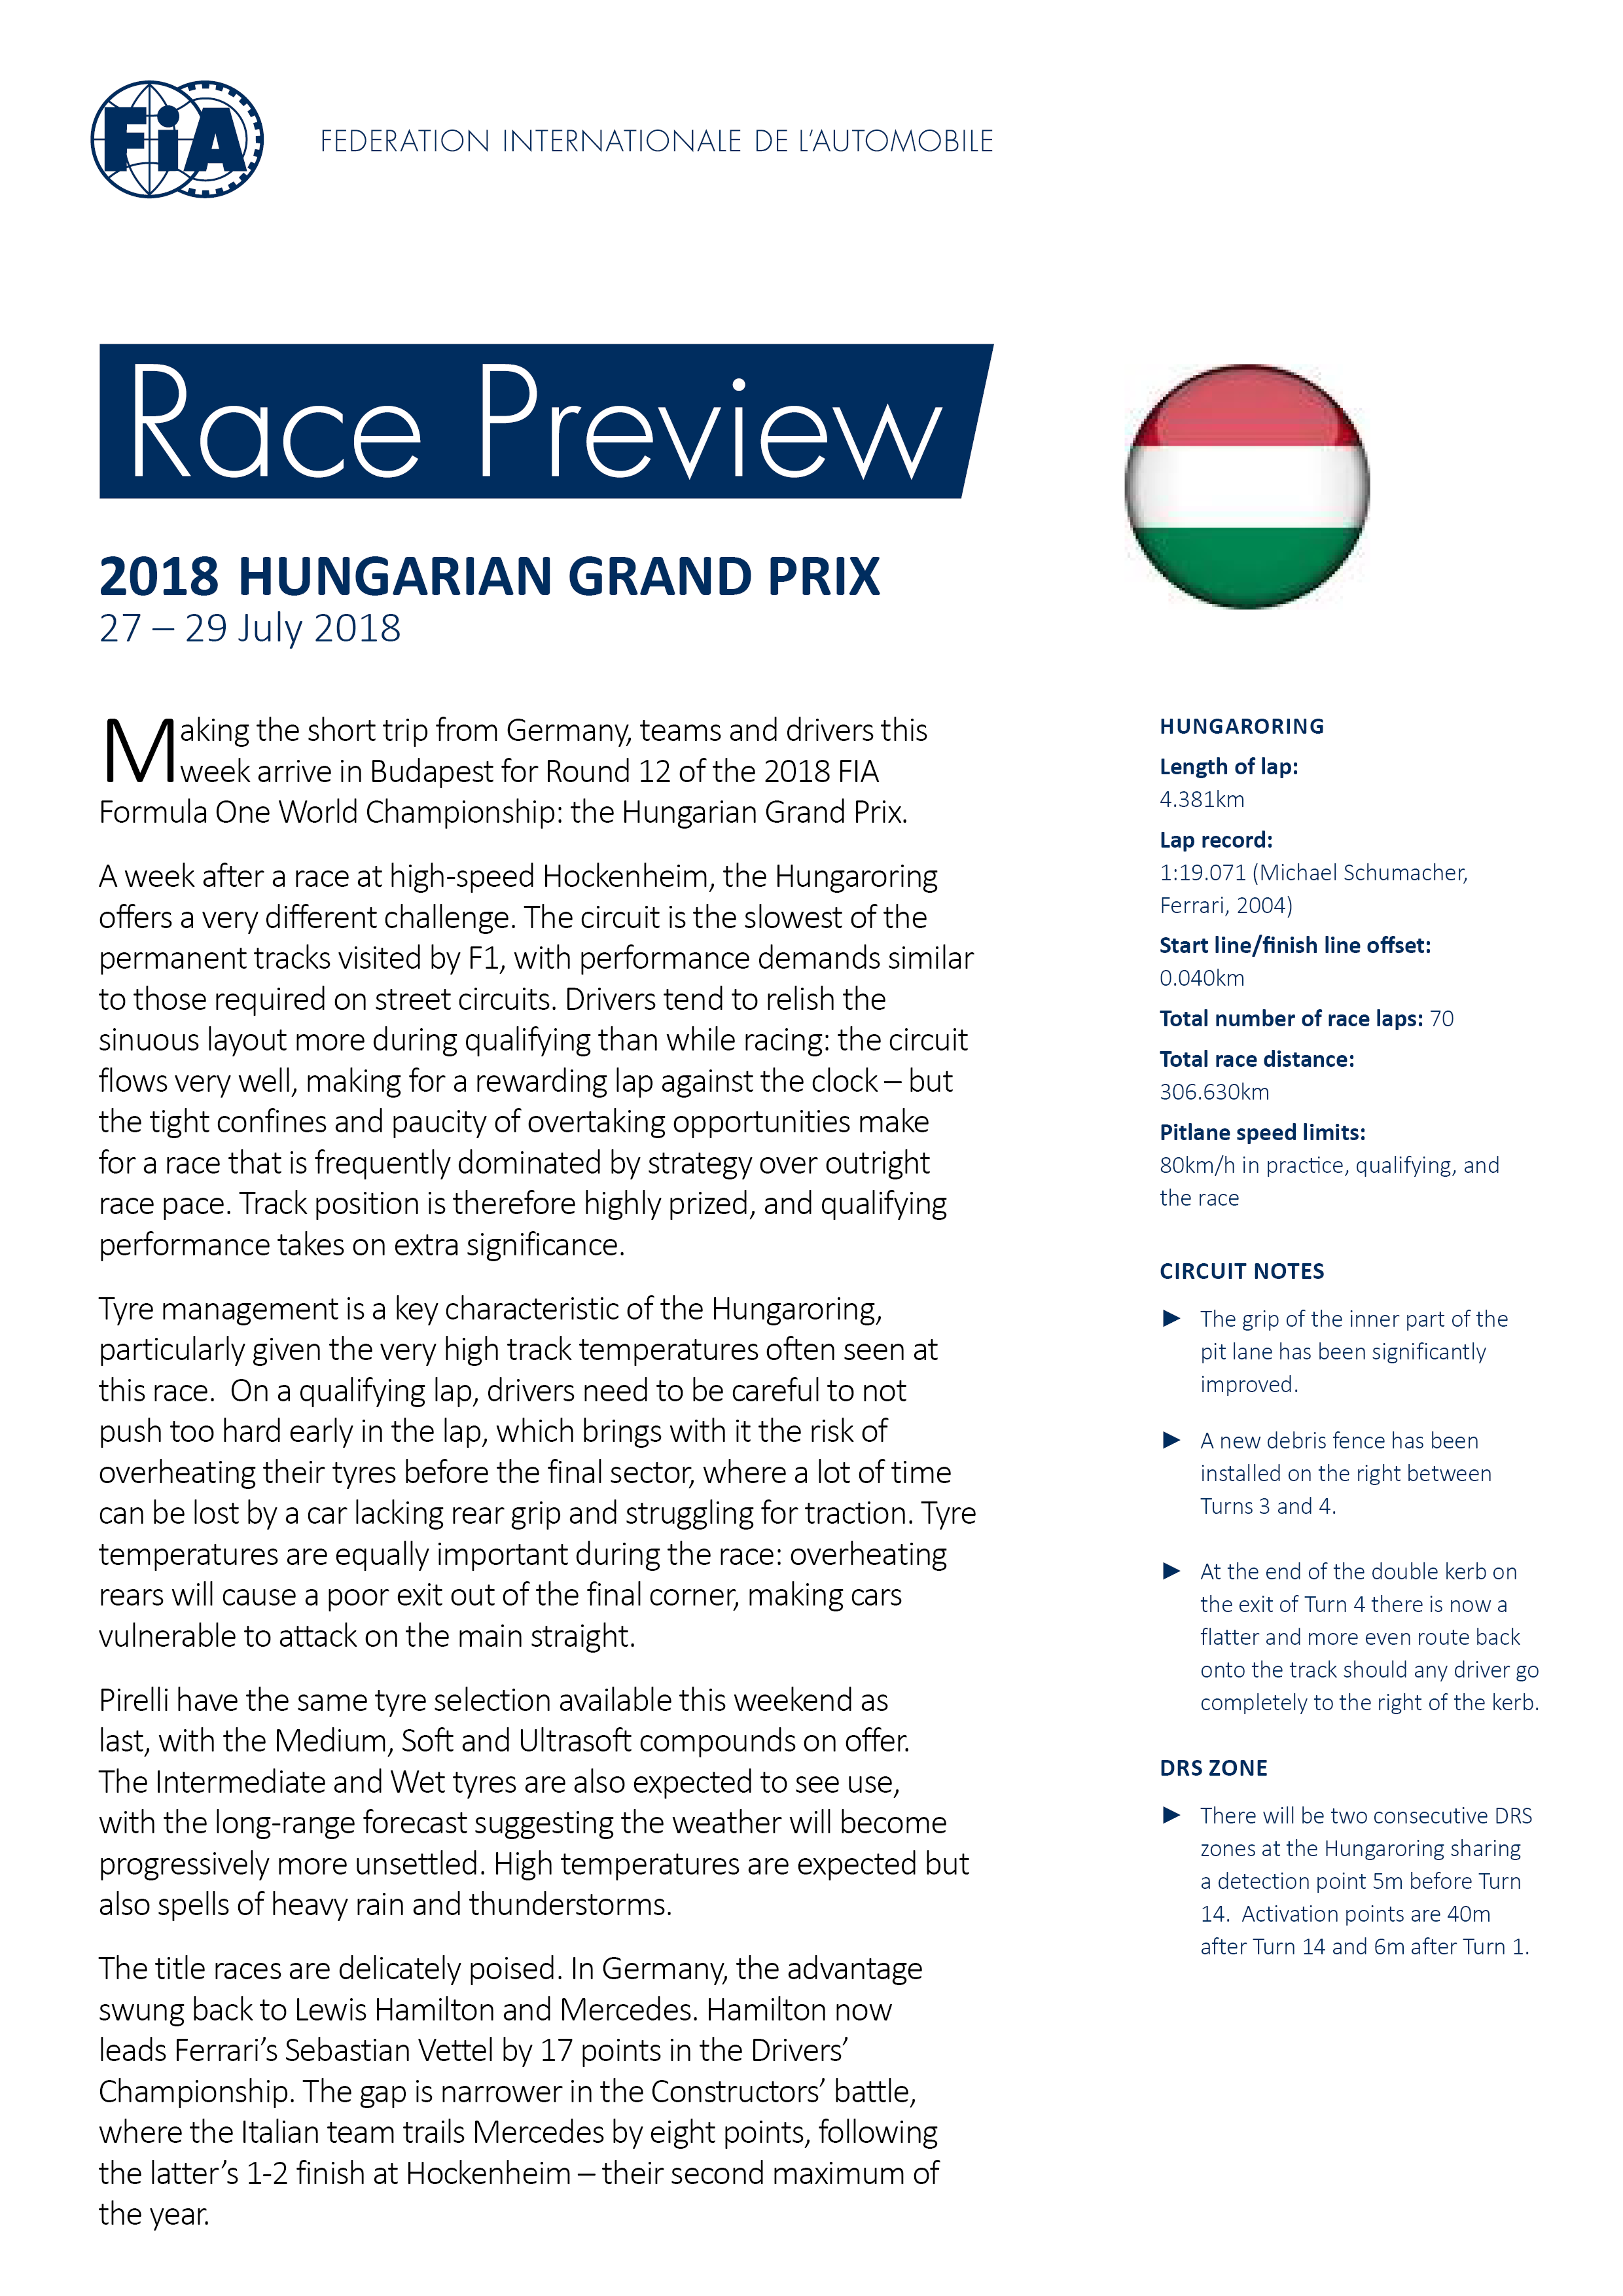 Hungarian Race Preview